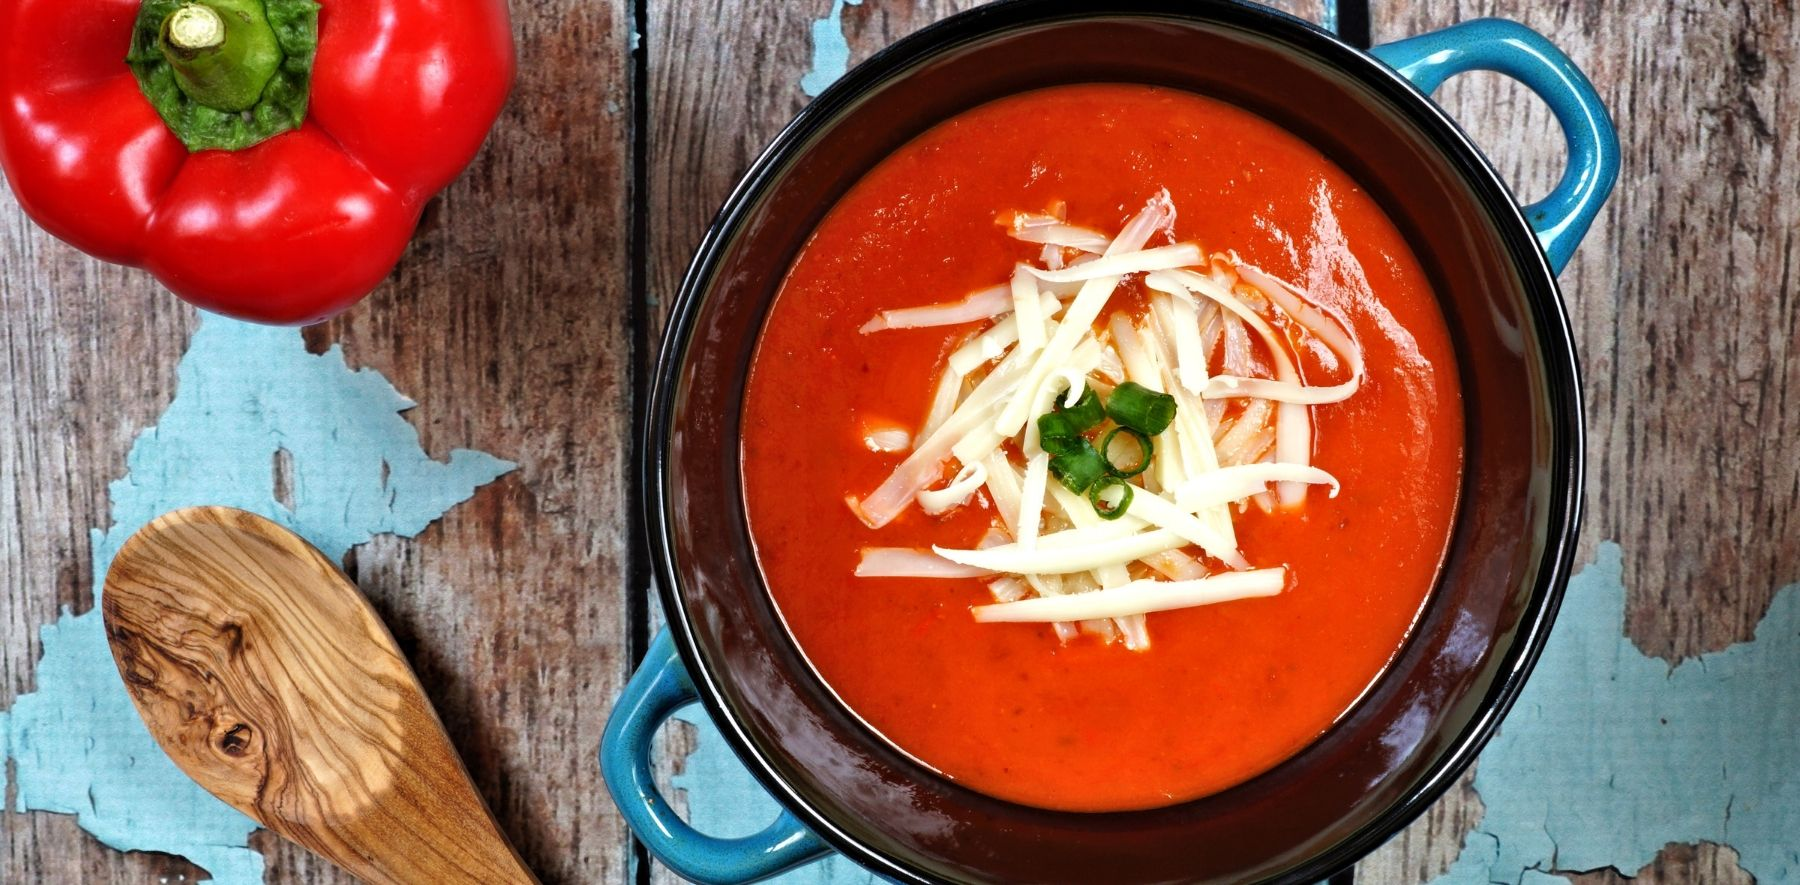 soupchef red pepper tomato and paprika